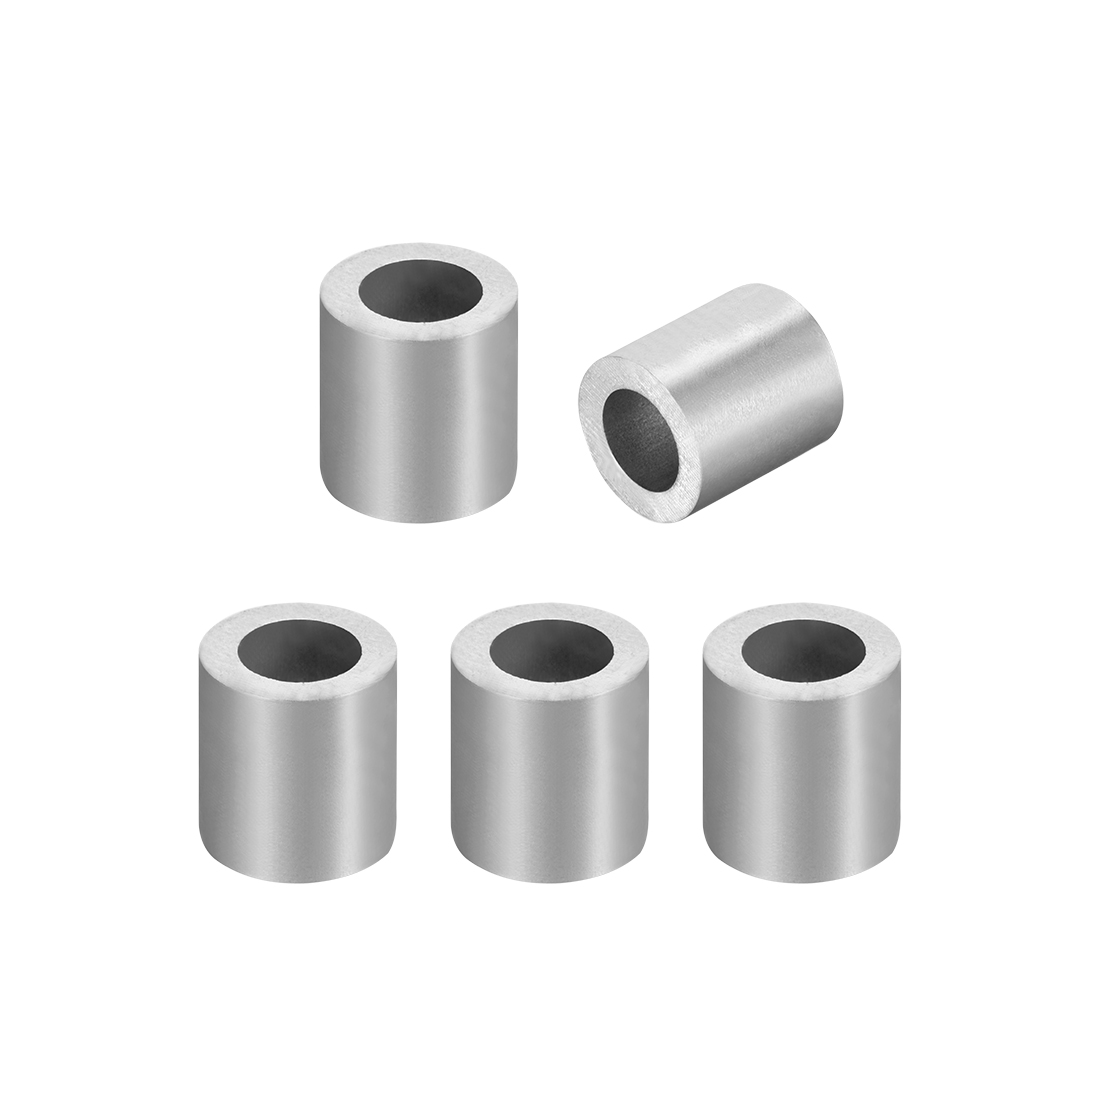 Uxcell 6.5mm 1/4-inch Cable Wire Rope Aluminum Sleeves Clip Crimping Loop 5pcs